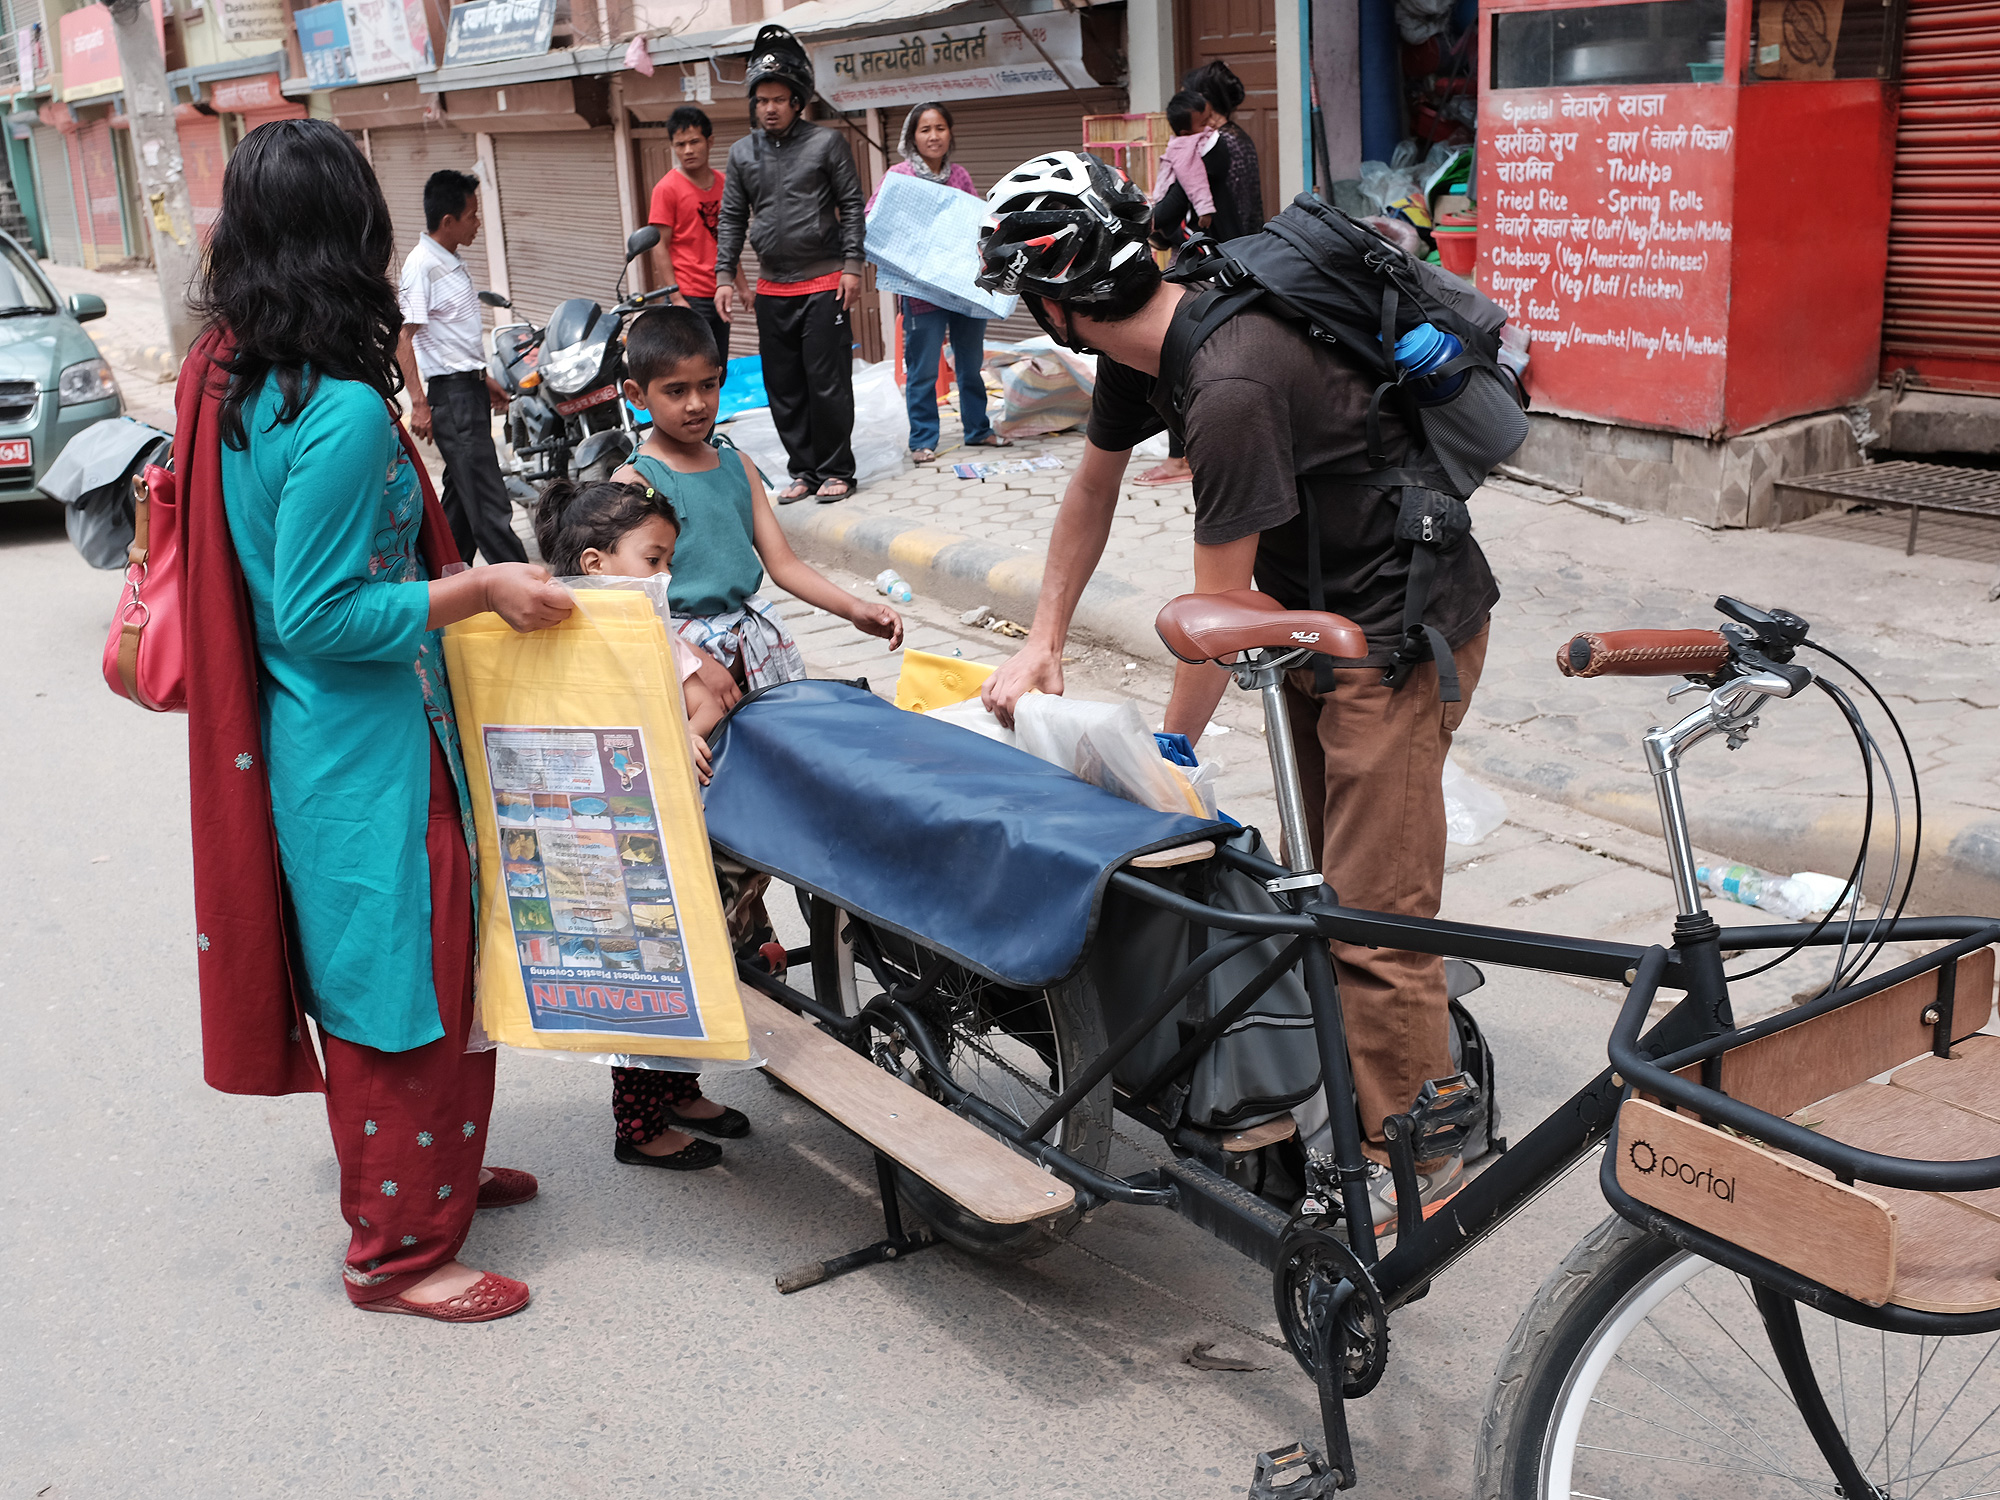 A mountain bike team member hands out tarpaulin in villages in need of relief after the Nepal earthquake of April 25, 2015